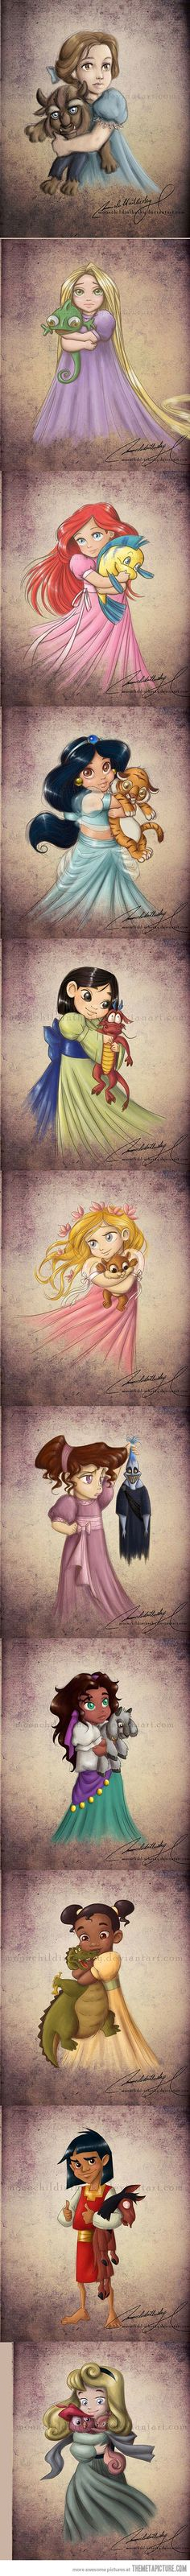 This is supposed to be princesses and their pets, but I find it humorous that a prince is in this.